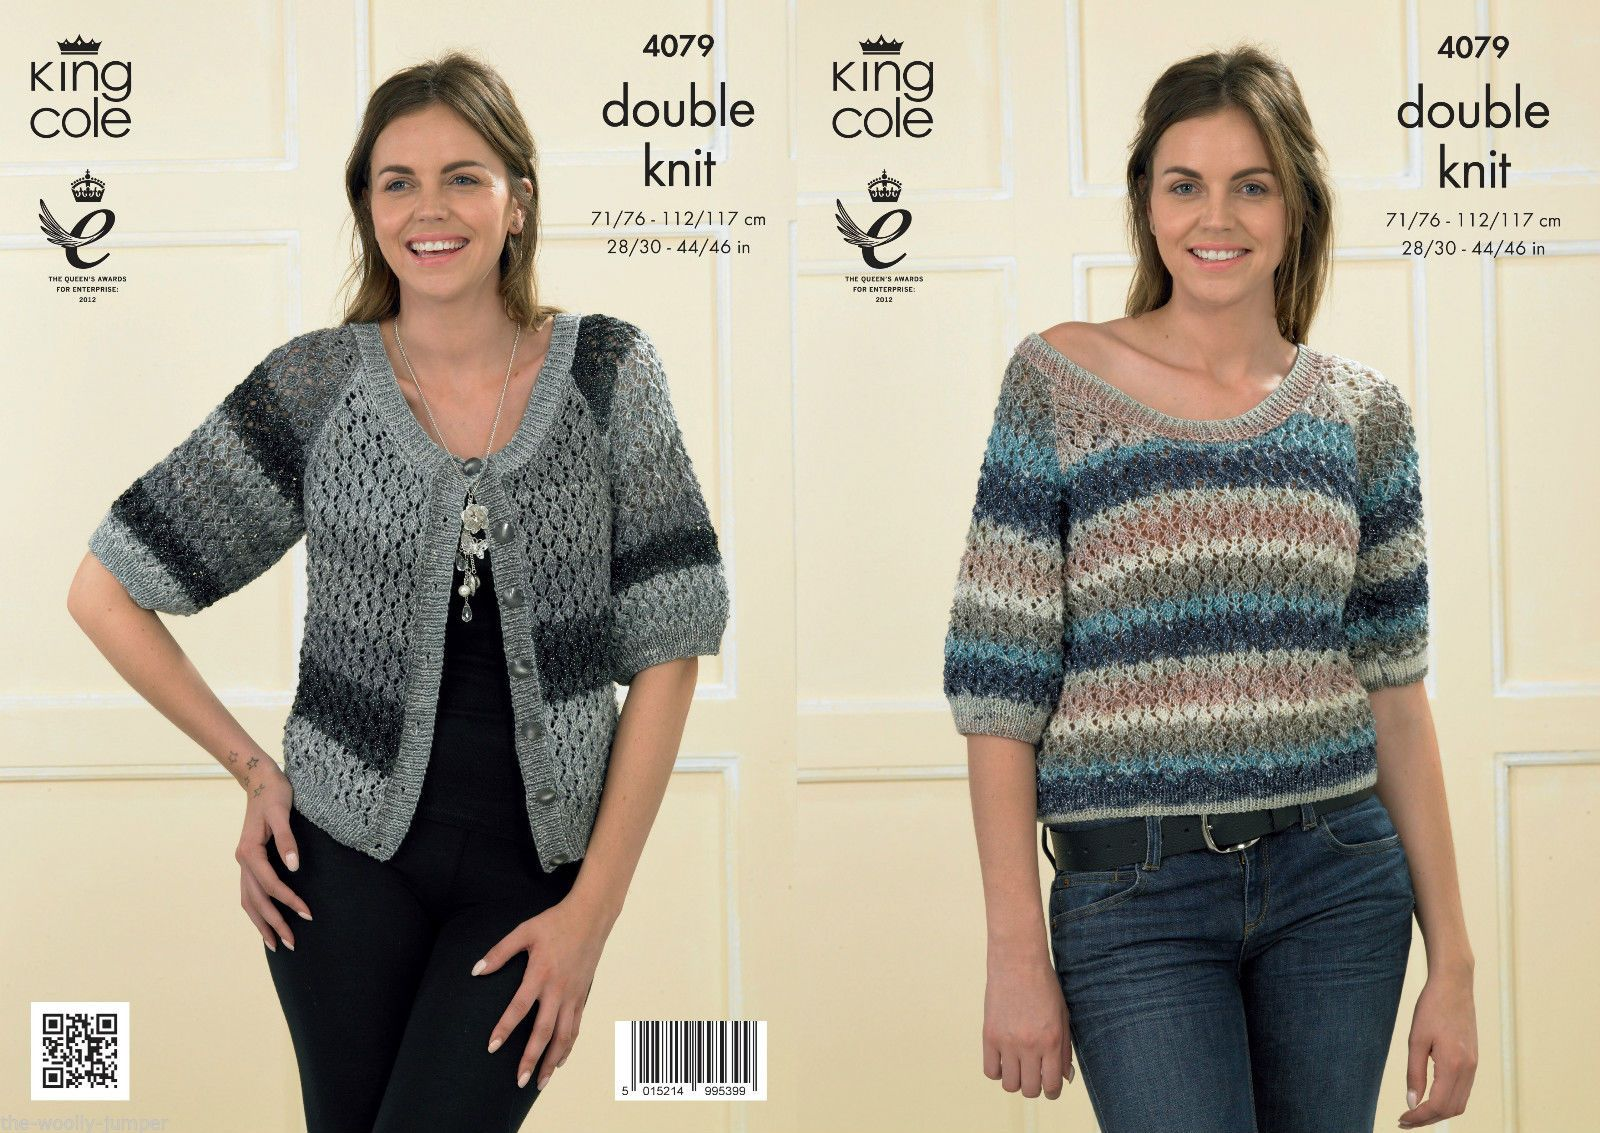 f26aa0a588c2 4079 - KING COLE SHINE DK CARDIGAN   TOP KNITTING PATTERN - TO FIT CHEST  SIZE 28 TO 46